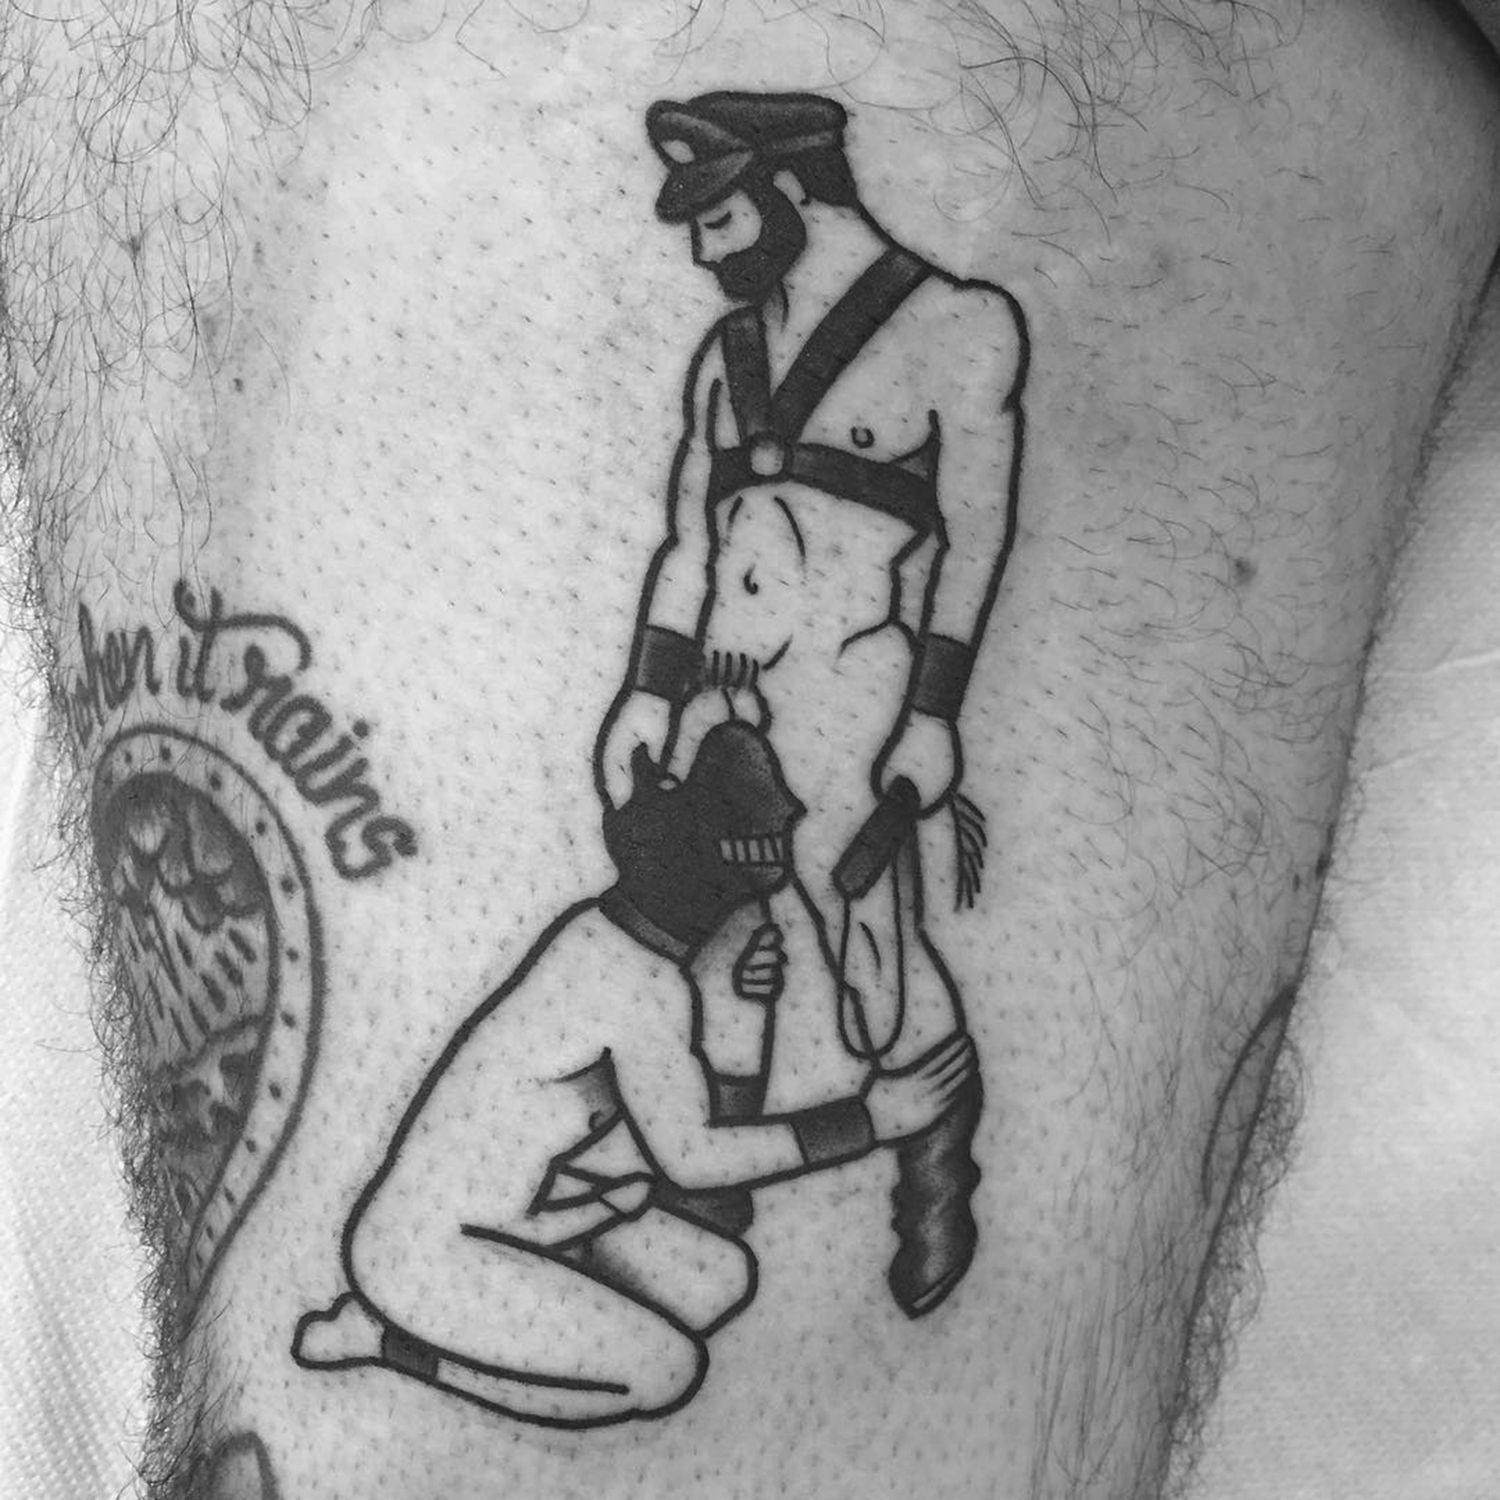 bdsm tattoo